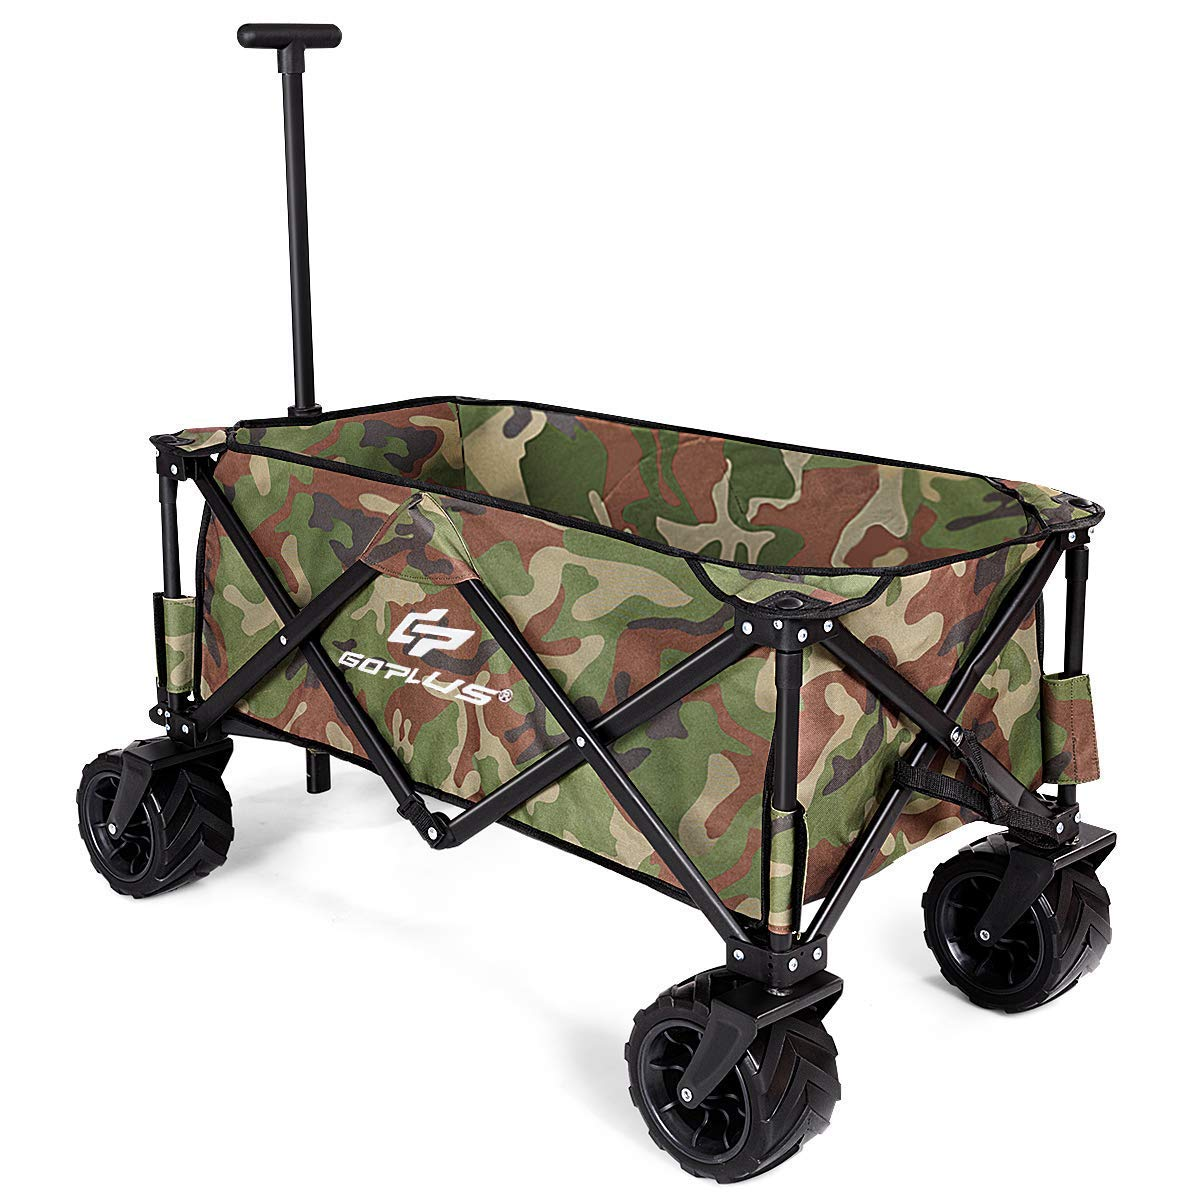 Goplus Collapsible Folding Wagon Cart, Utility Garden Cart Collapsible Outdoor Trolley w/Push Bar for Shopping, Beach, Lawn, Sports by Goplus